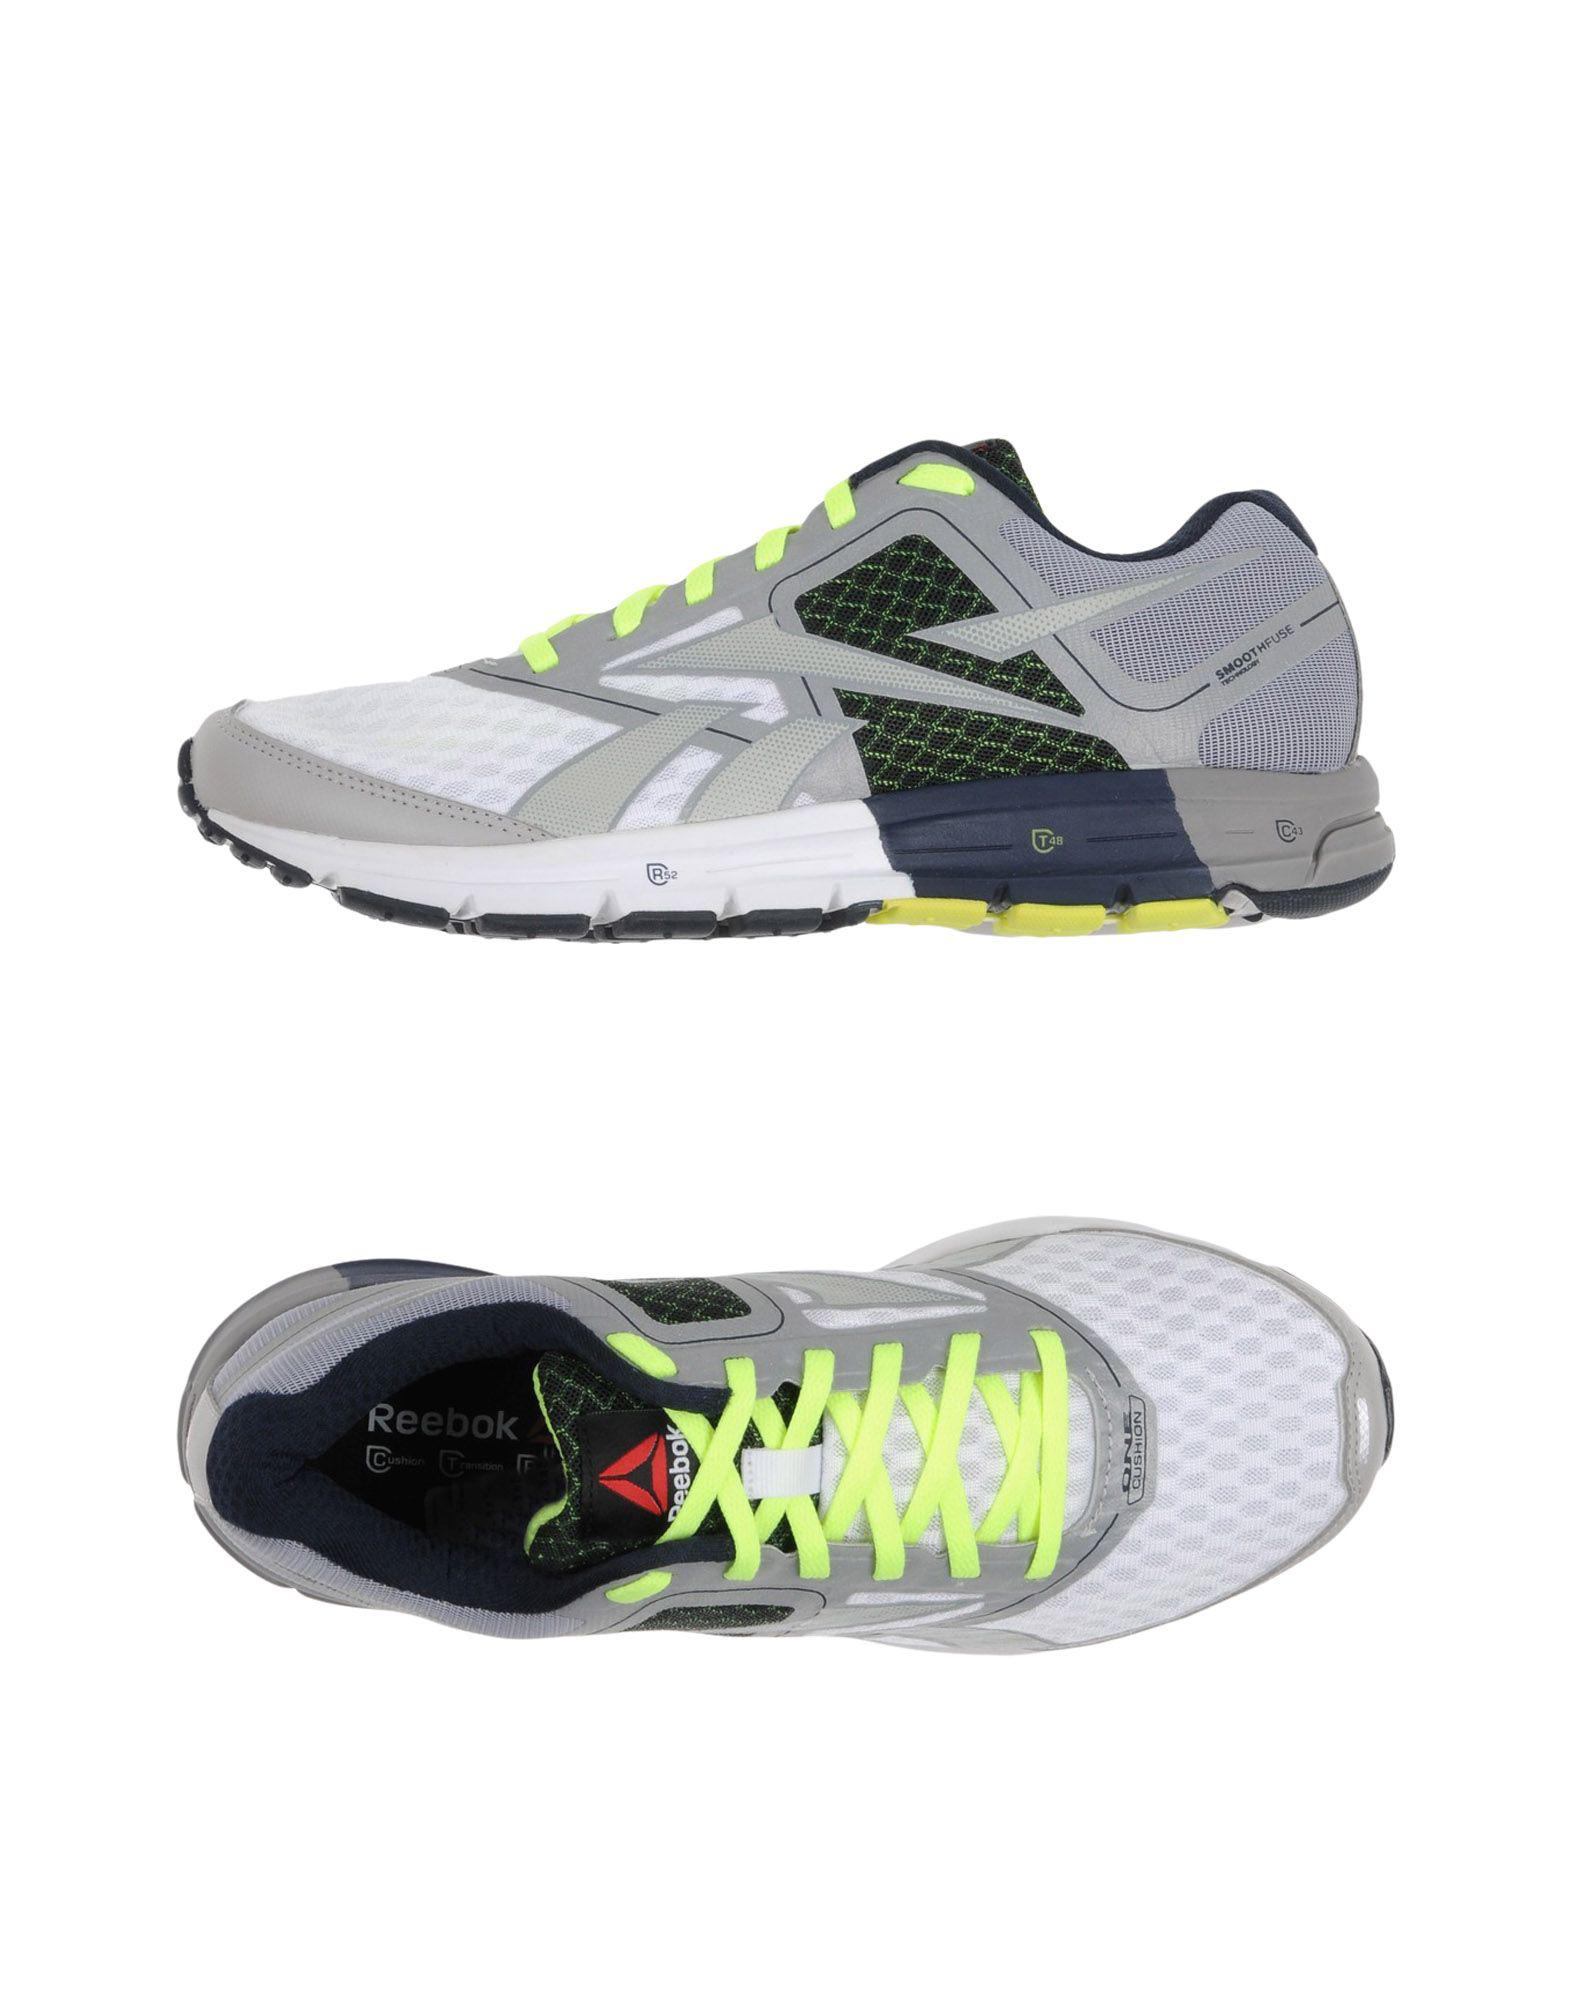 Sneakers Gray Amp; Xxaapwq In Lyst Reebok Men Tops For Low 3Jul1FTc5K